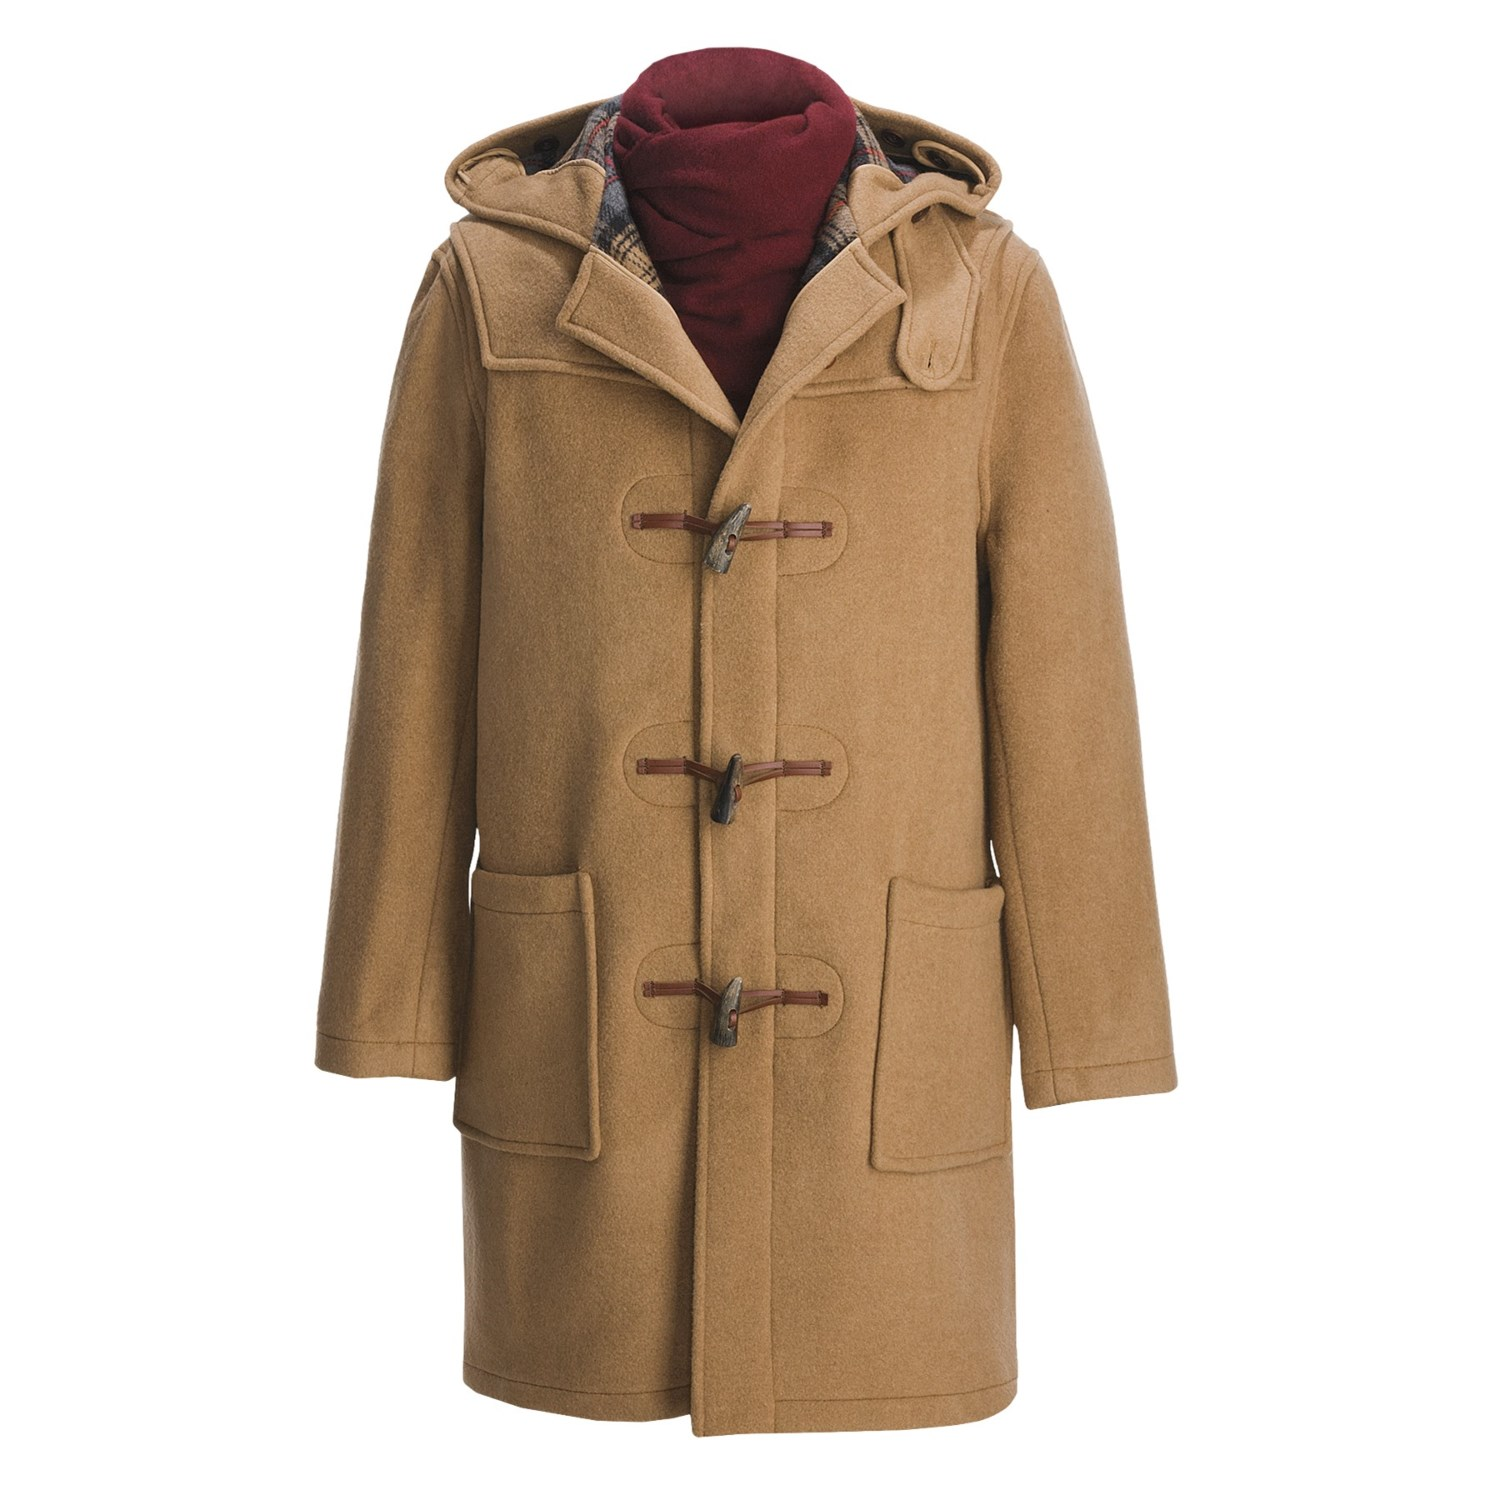 Duffle Coat Color and Brand